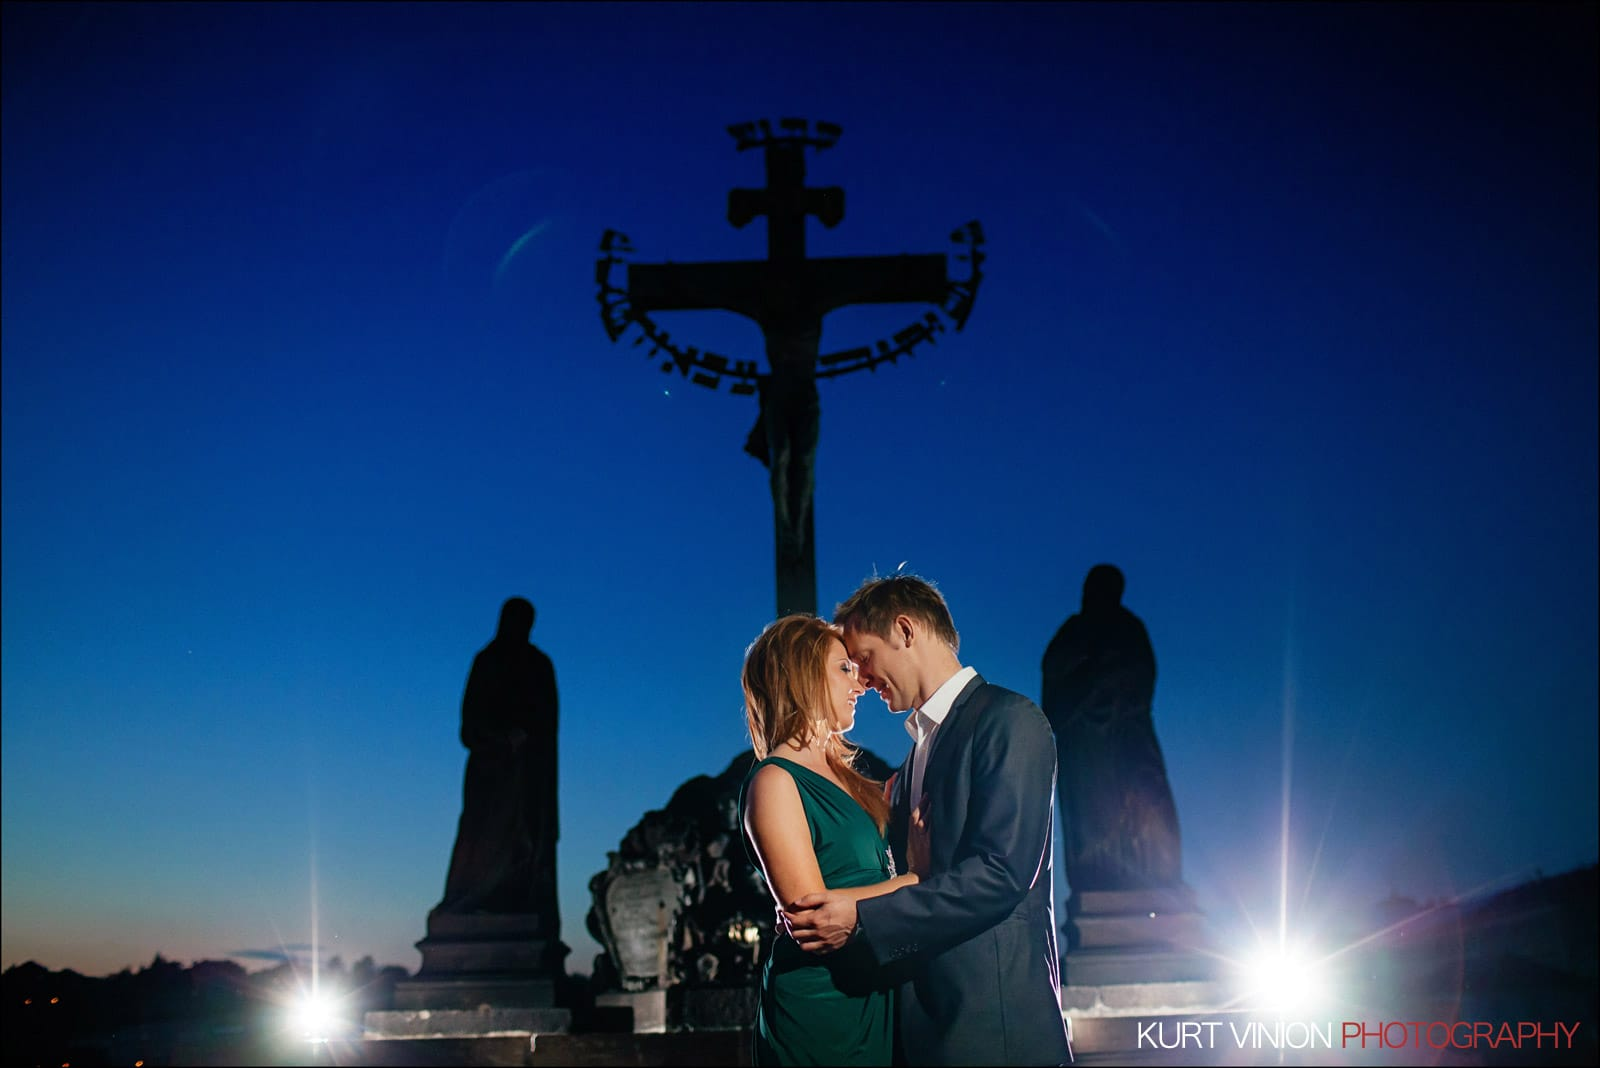 Elopement wedding Prague / Polya & Dirk wedding romantic portraits atop the Charles Bridge